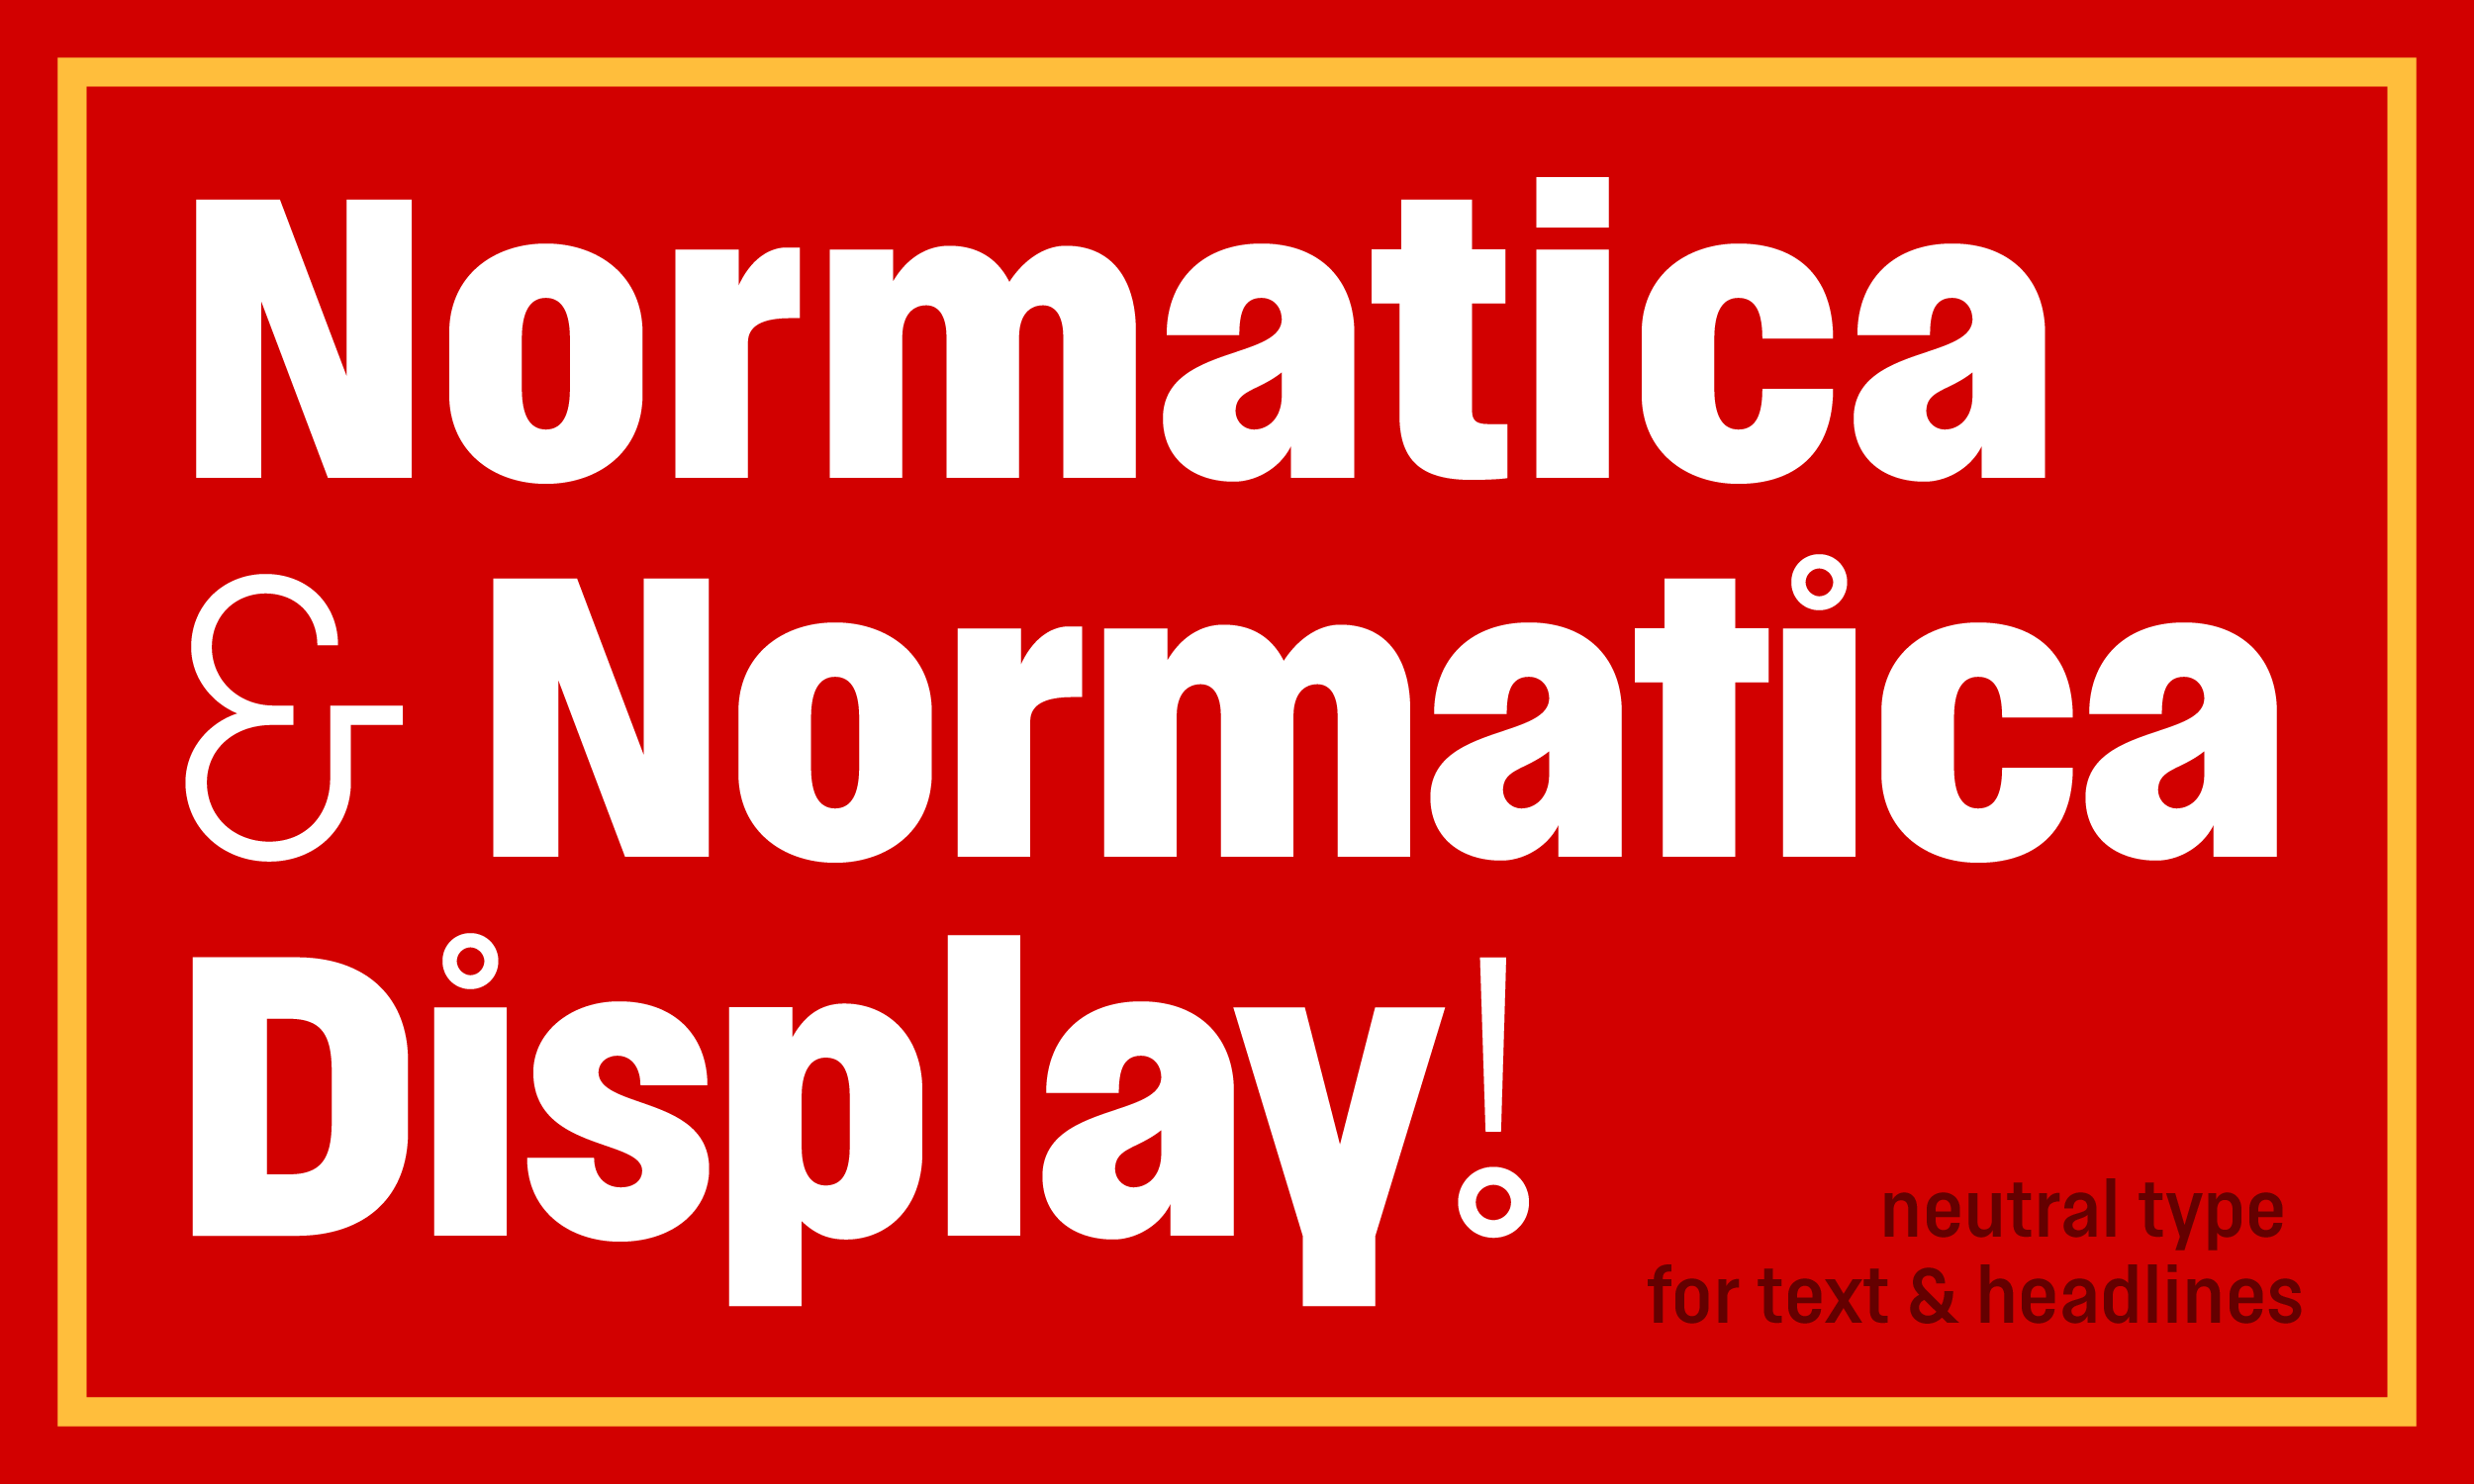 Normatica-01.png